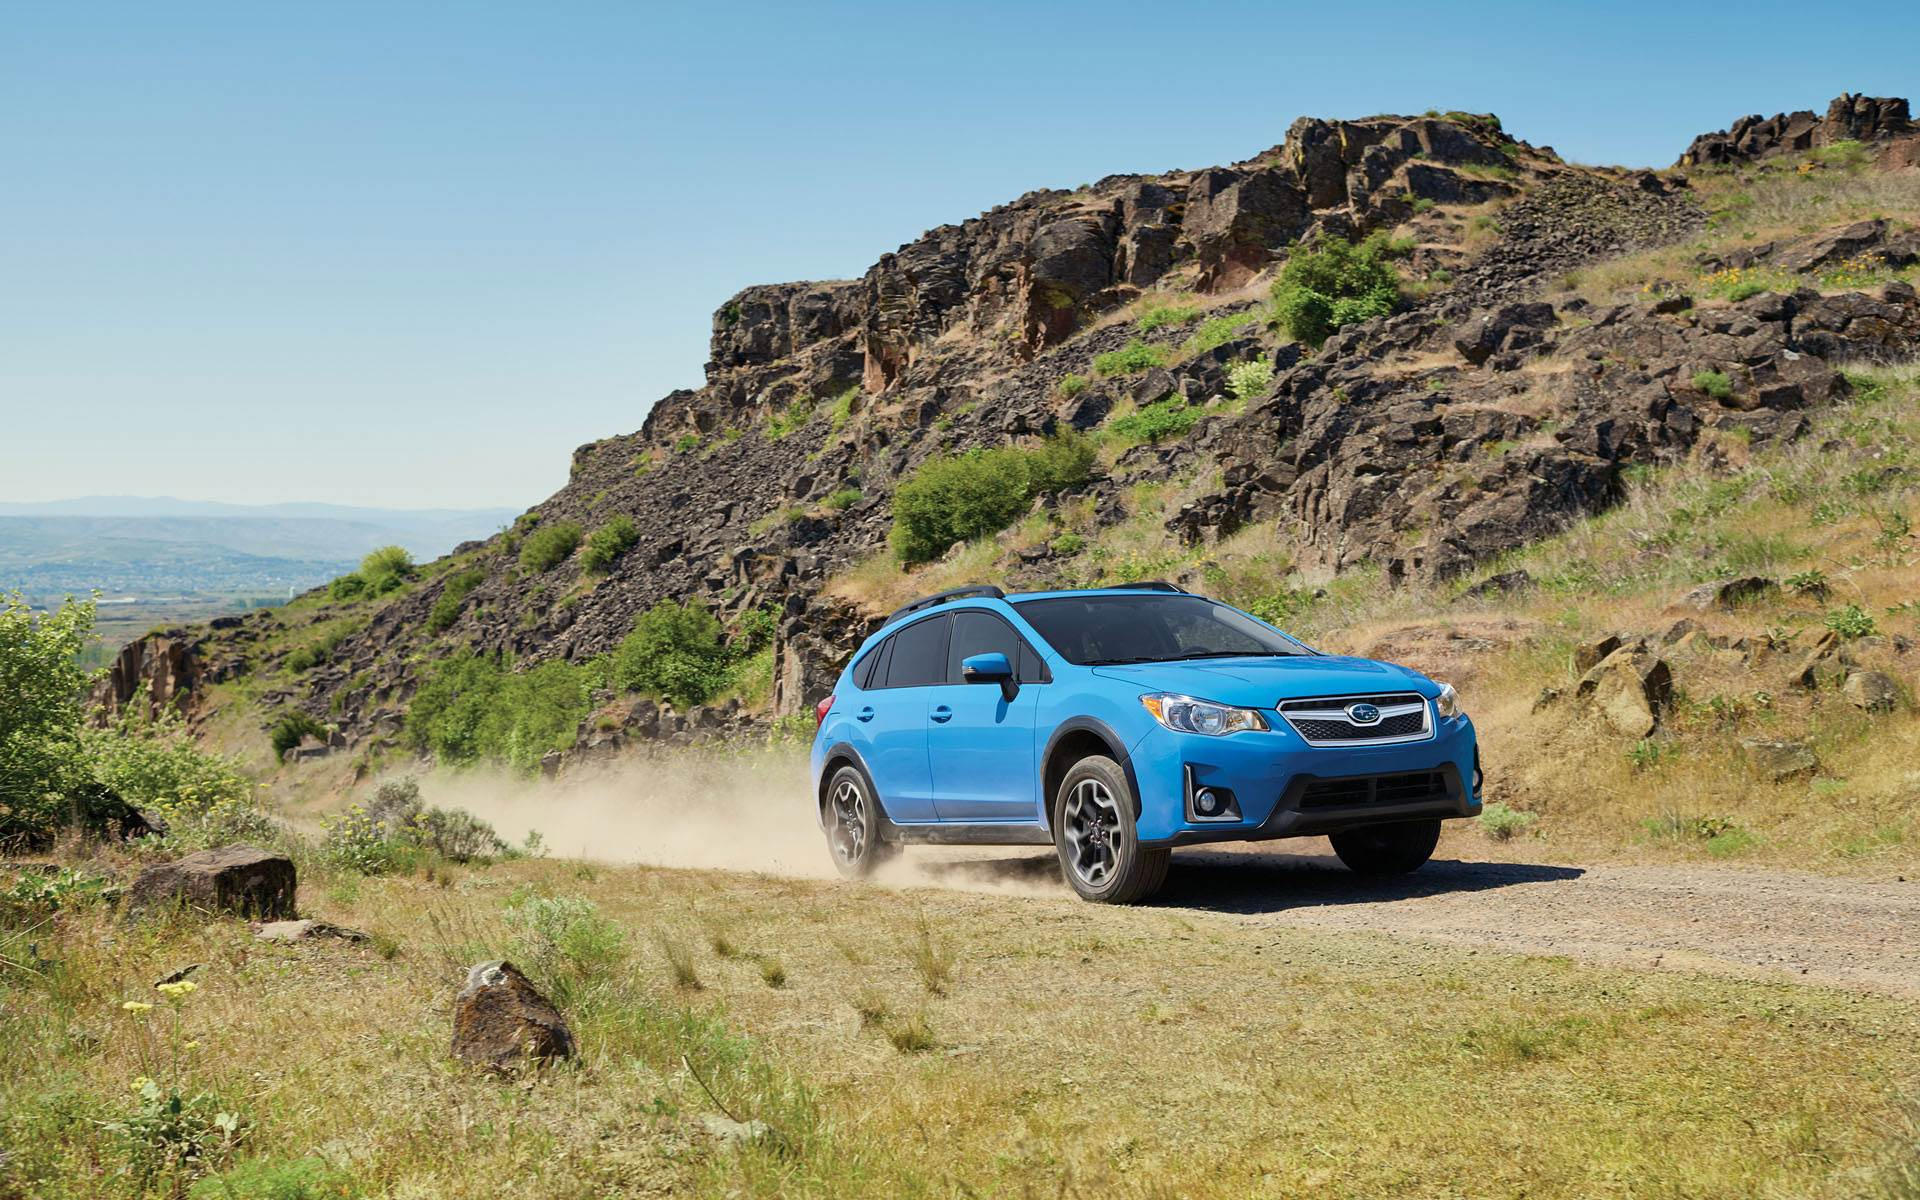 Jacked Up Subaru Forester >> Subaru Crosstrek Soldiers On For MY 2017, New Generation Incoming - autoevolution